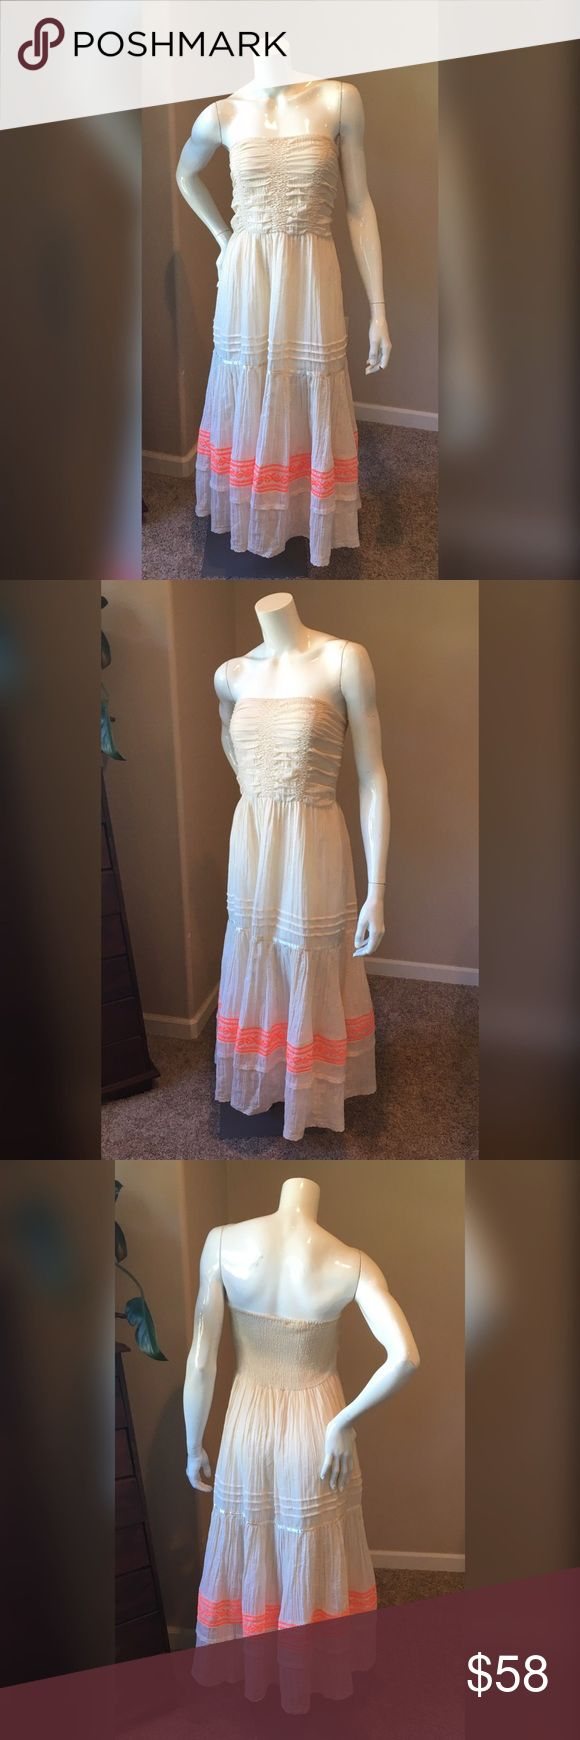 Free People S boHo strapless embroidered dress Free People S boHo strapless embroidered dress. All the stress is so small I would say that's a medium large best. Beautiful cream soft beige smocked top dress. Neon orange embroidering on the hem. This dress sits at midi length. Measurements will be posted soon Free People Dresses Midi